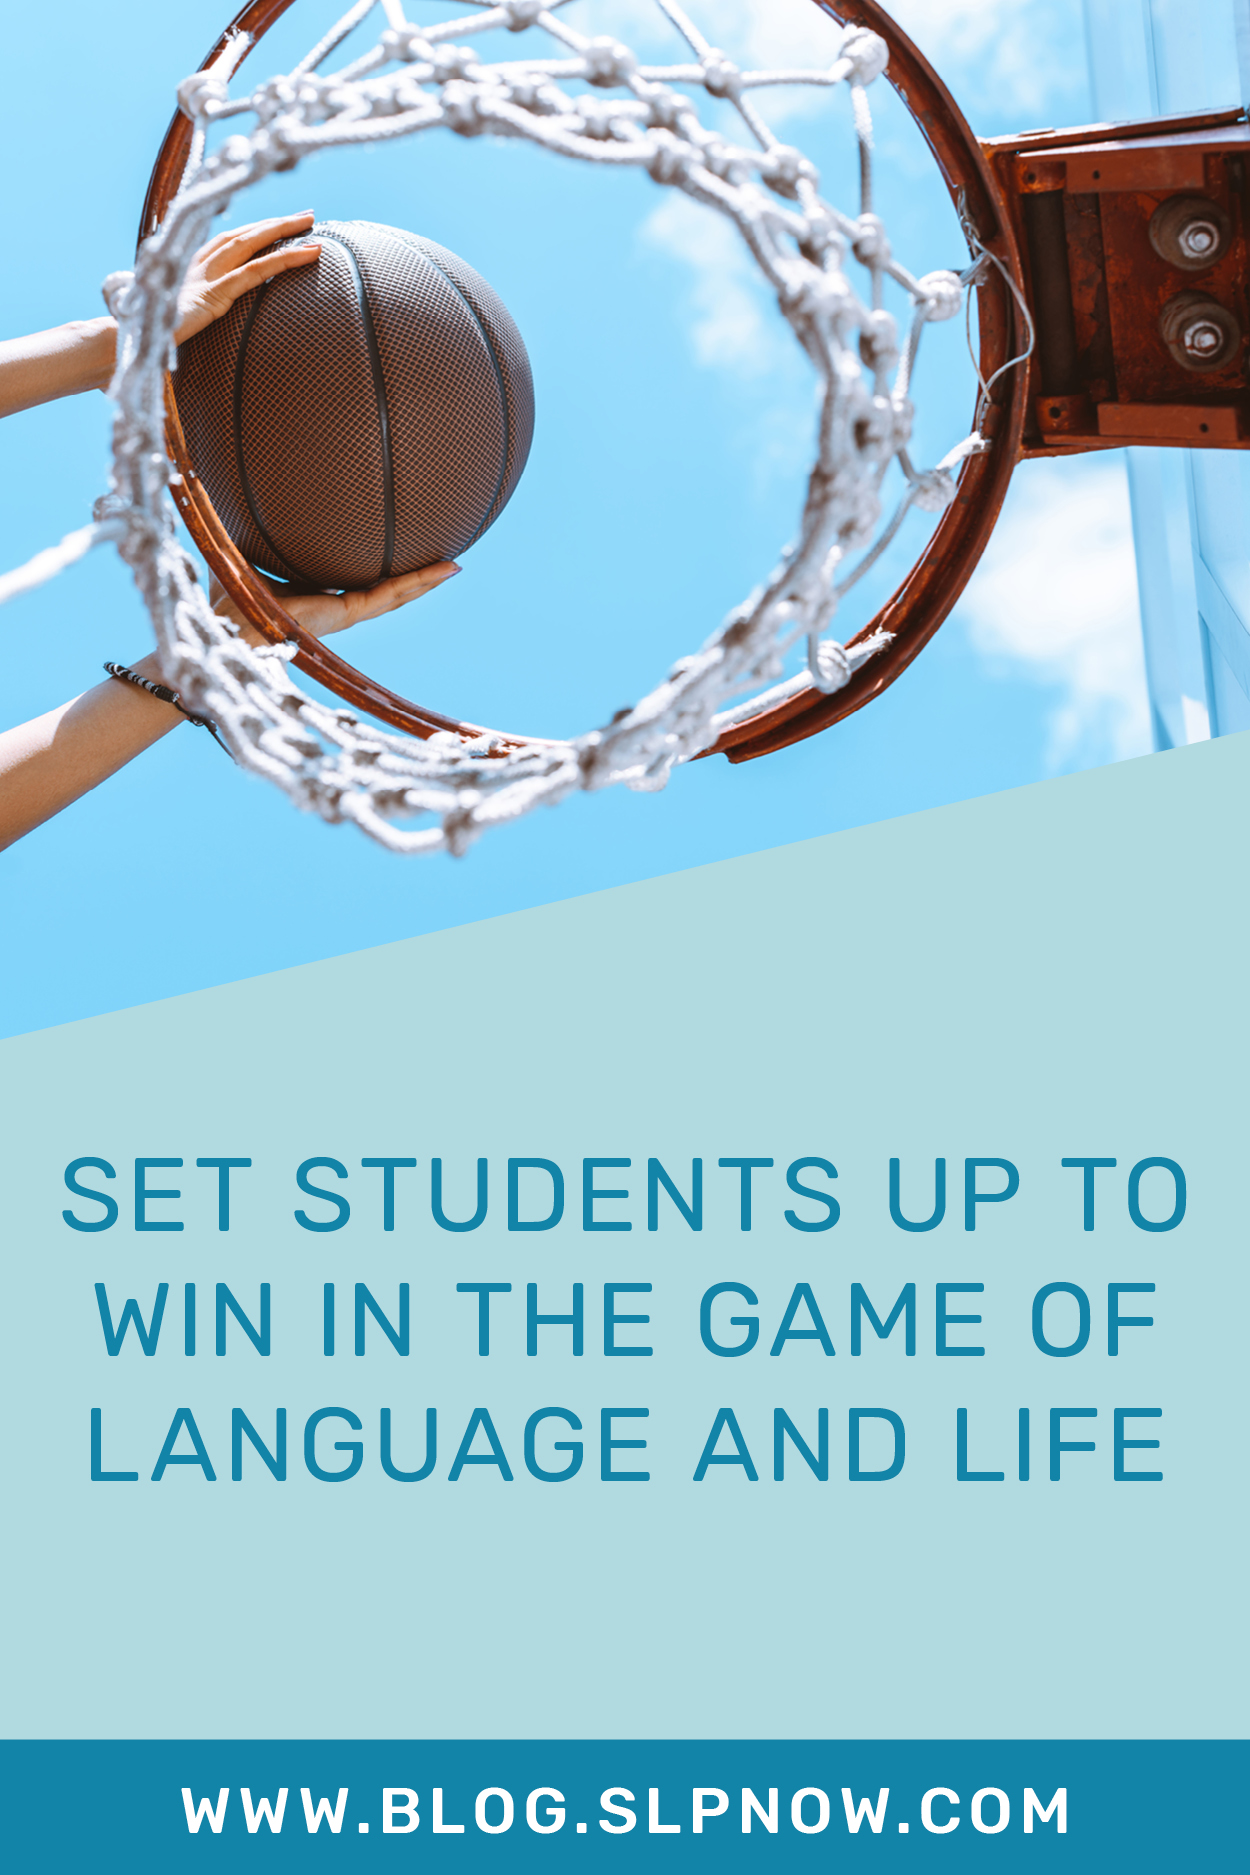 We practice a lot of skills and strategies in speech therapy sessions, but is what we're doing with our speech students really setting them up for success in the game of language and life? In this blog post, I explore an analogy for SLPs to consider, one that makes an argument for a contextualized approach to literacy-based therapy. Click through to read the post!